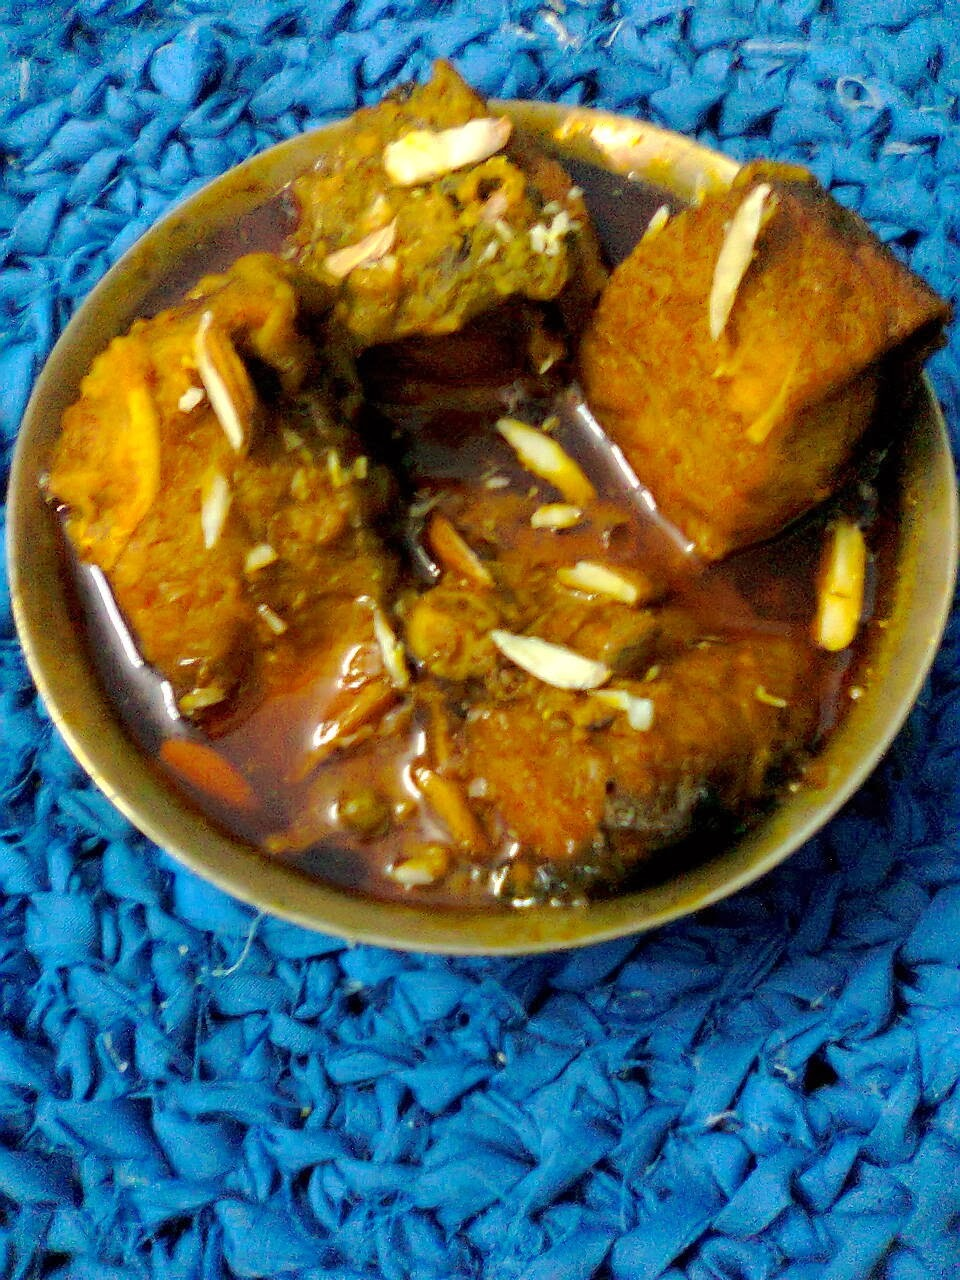 Tomato Rui/Rohu Fish With Tomto/Bengali Rui Macher Jhol.